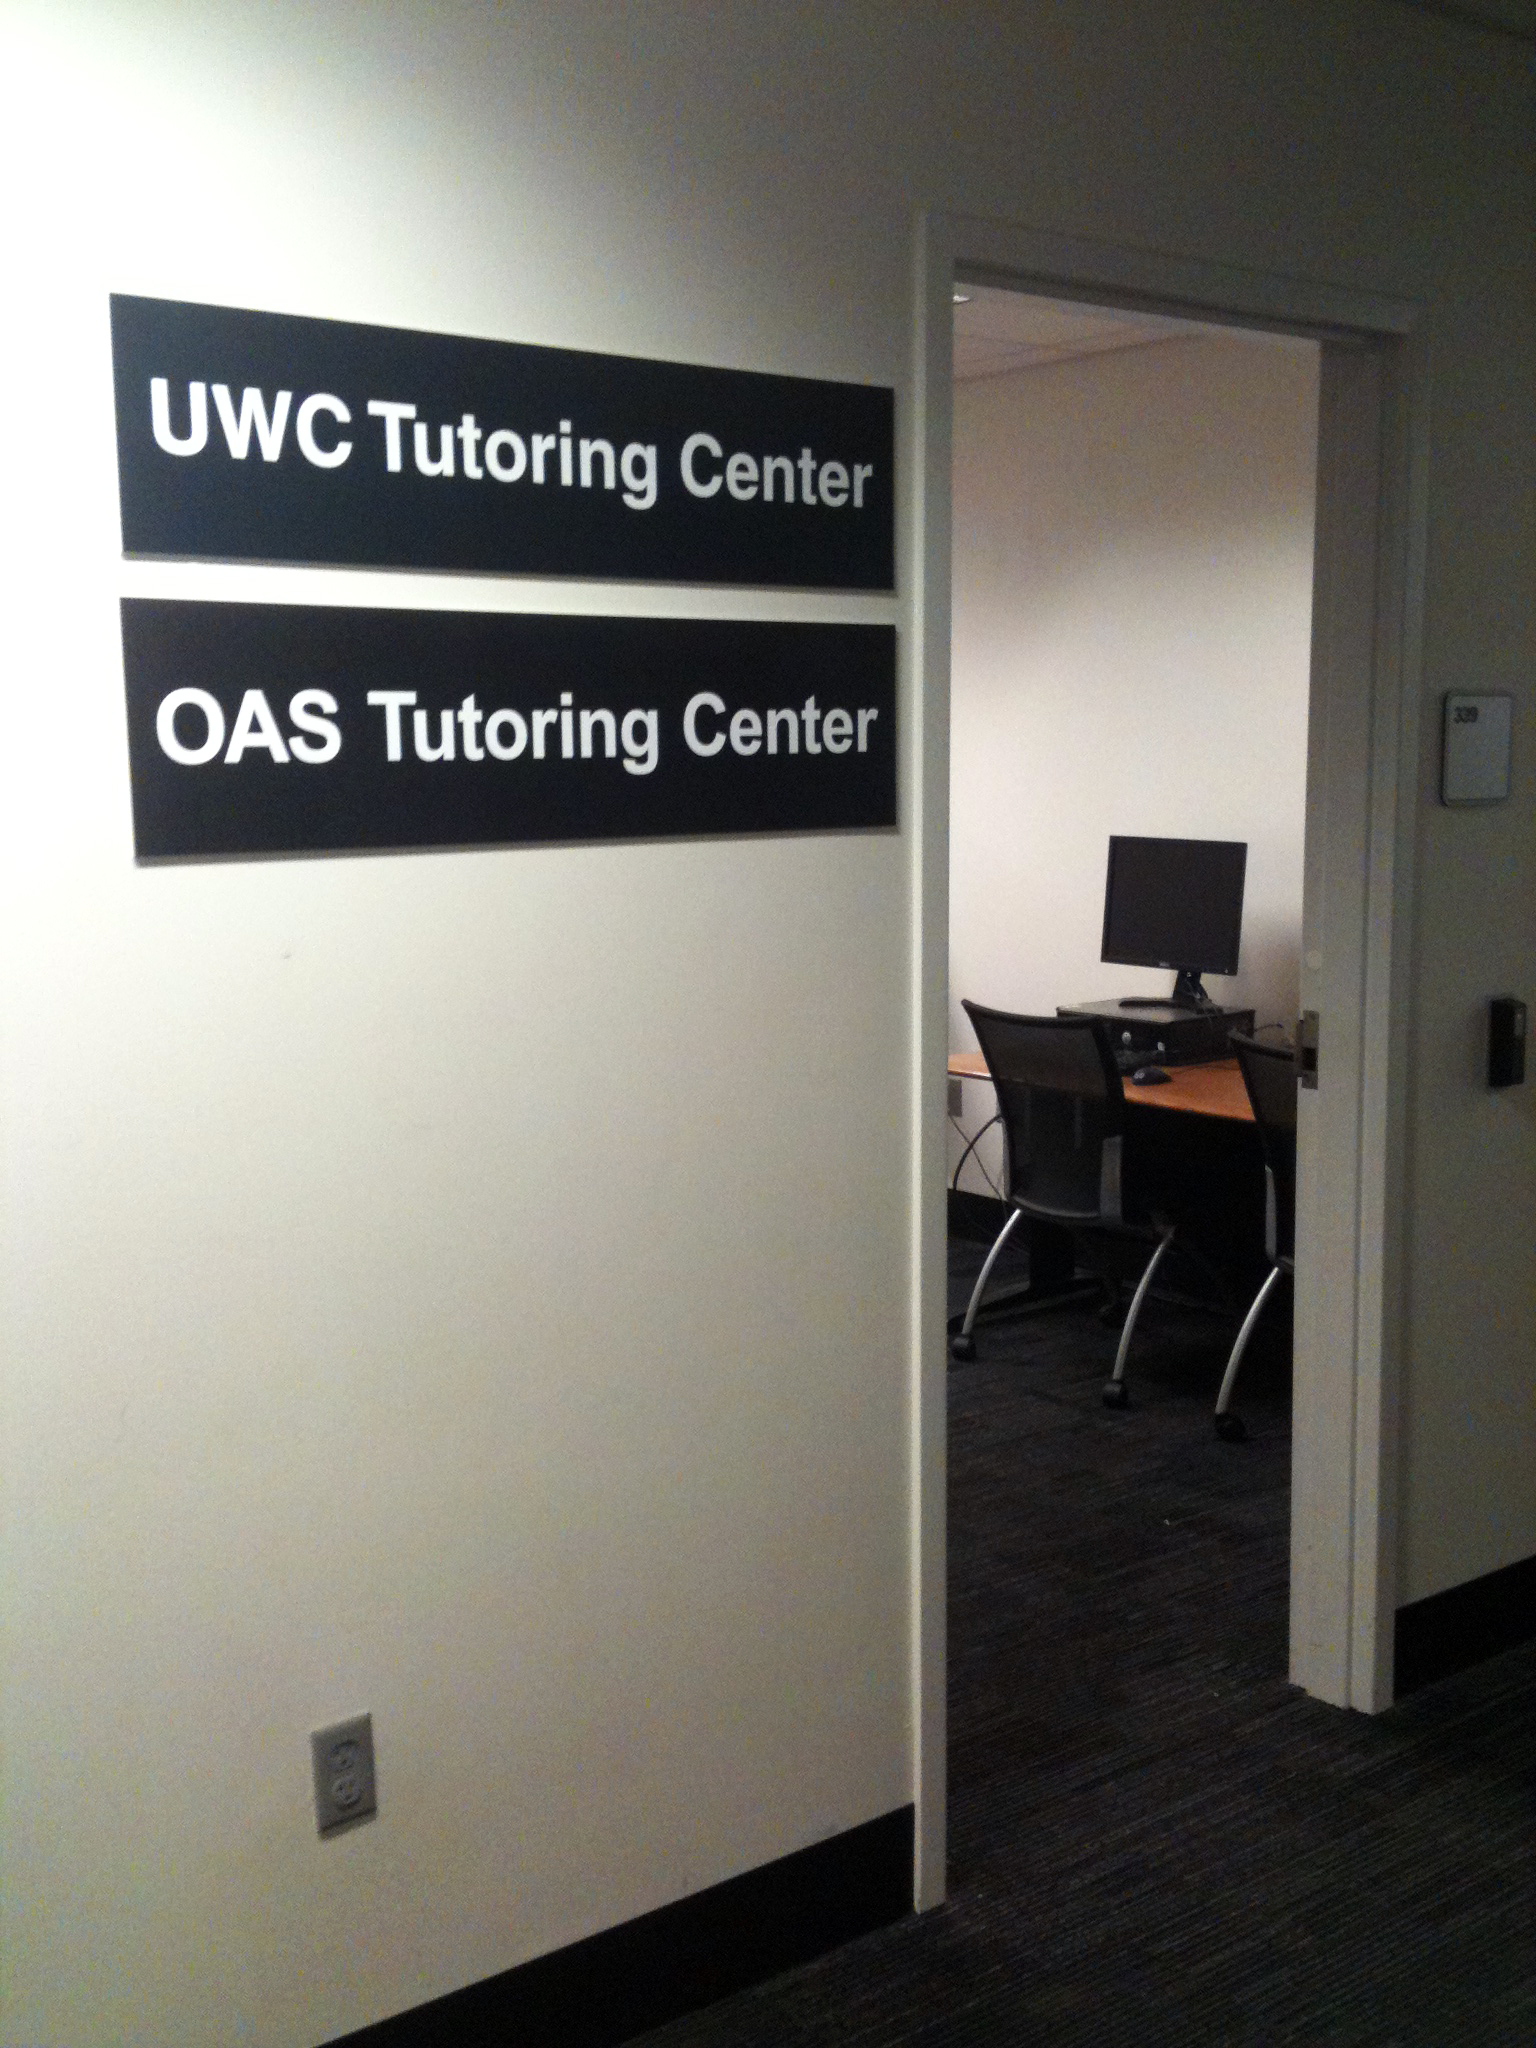 FREE TUTORING IN LIBRARY WEST. Picture of entrance of Library West Tutoring Center, Room 339